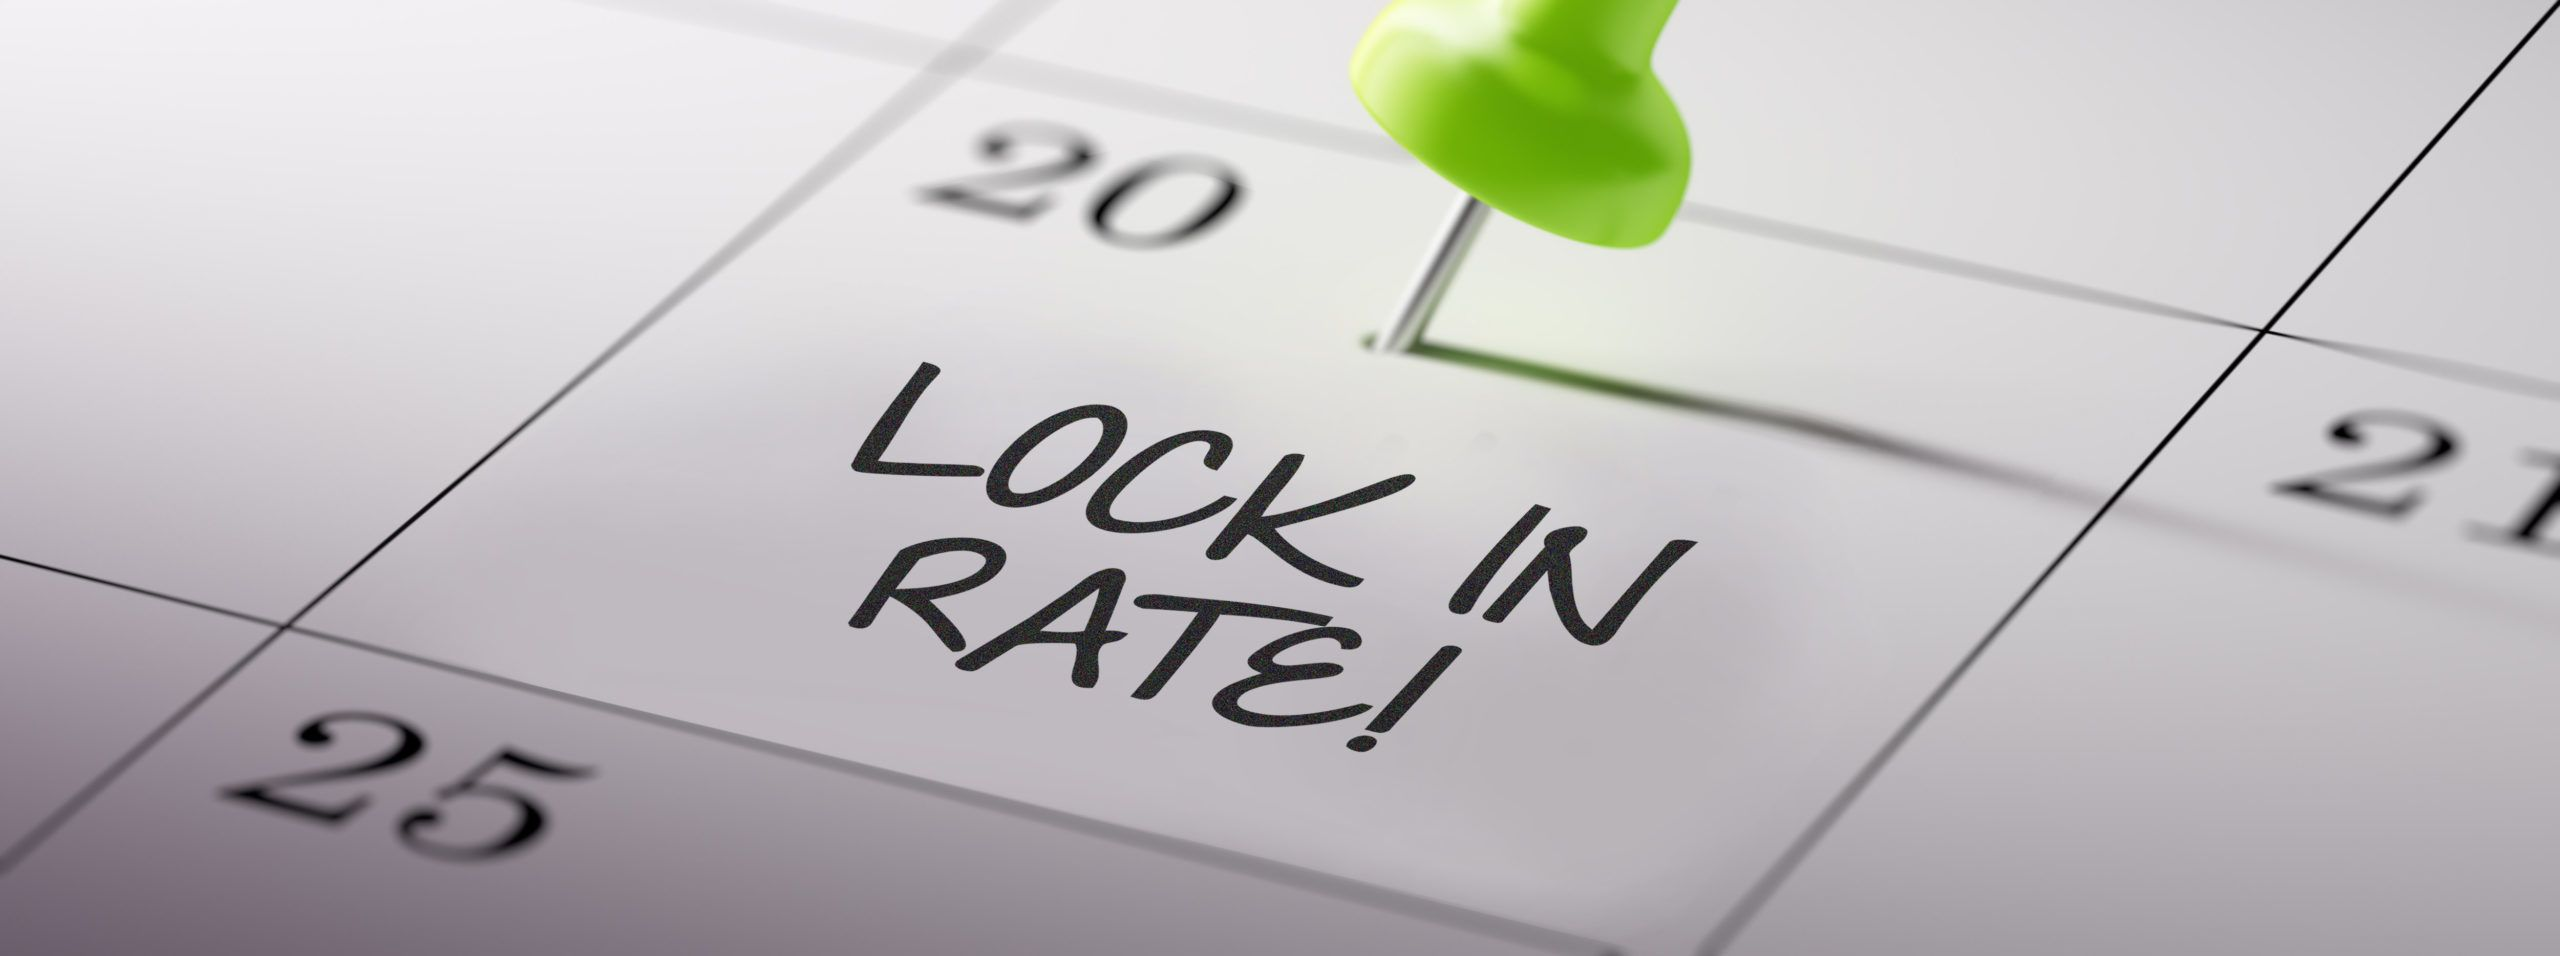 lock_in_rate